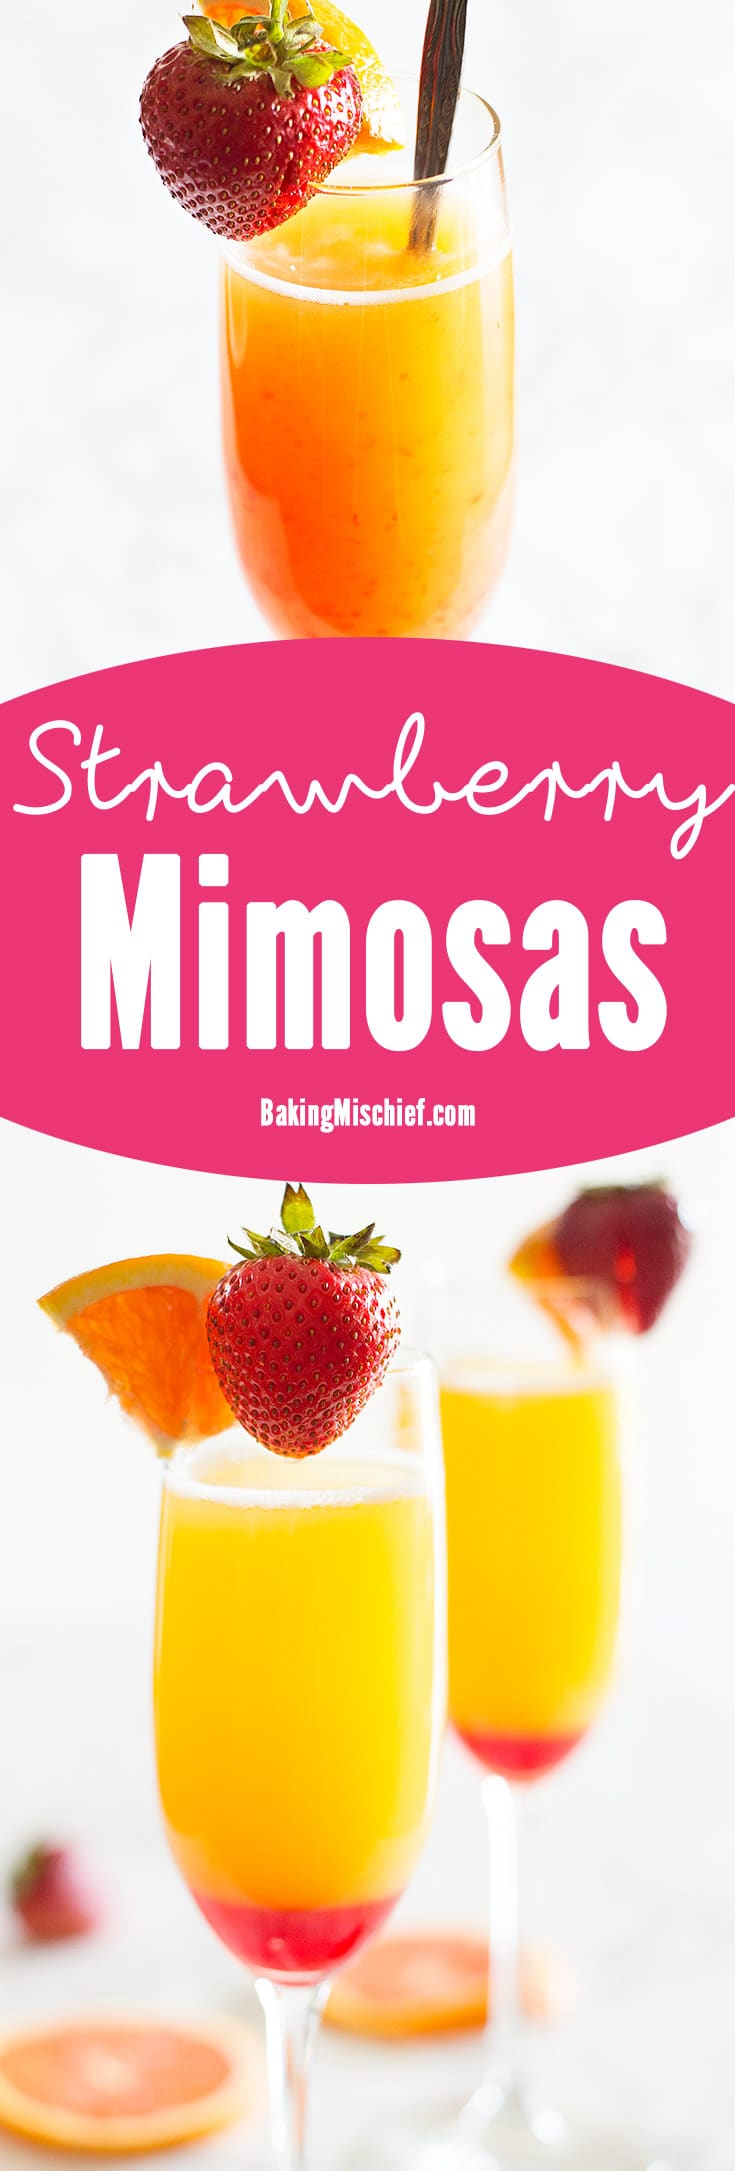 Make brunch even better with a simple but beautiful strawberry upgrade to your classic mimosa recipe. Recipe includes nutritional information and